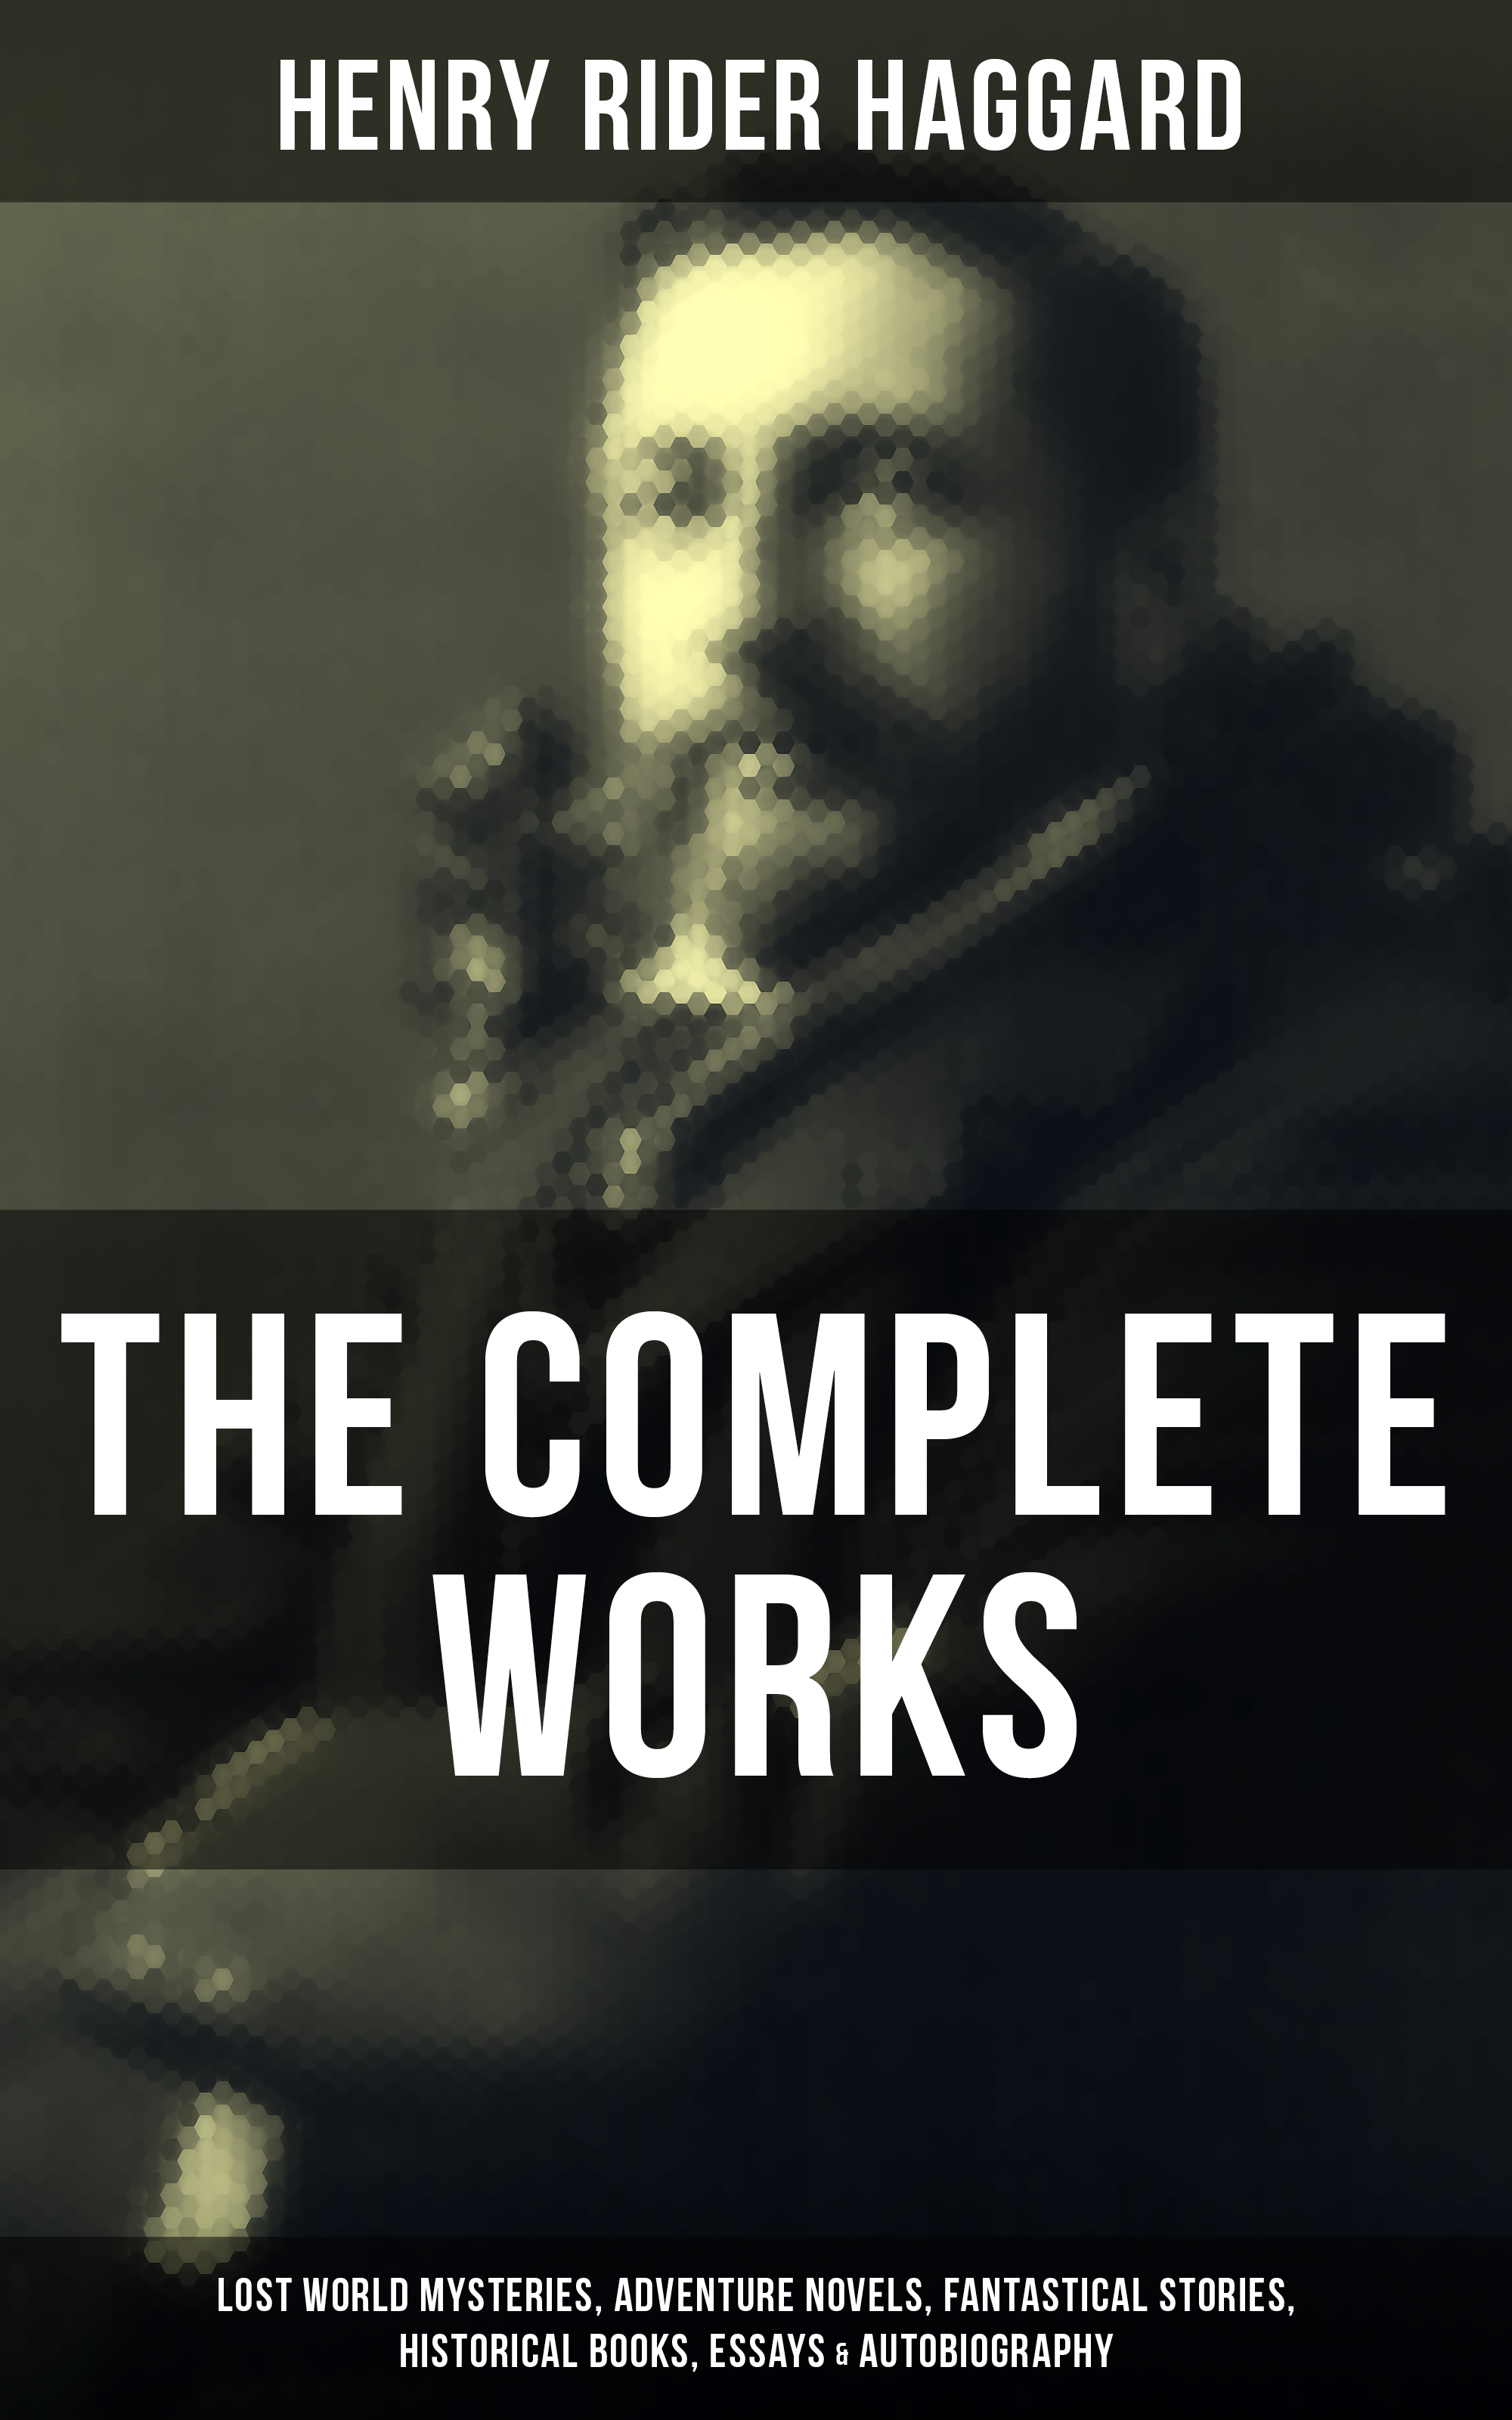 Henry Rider Haggard The Complete Works of Henry Rider Haggard: Lost World Mysteries, Adventure Novels, Fantastical Stories, Historical Books, Essays & Autobiography